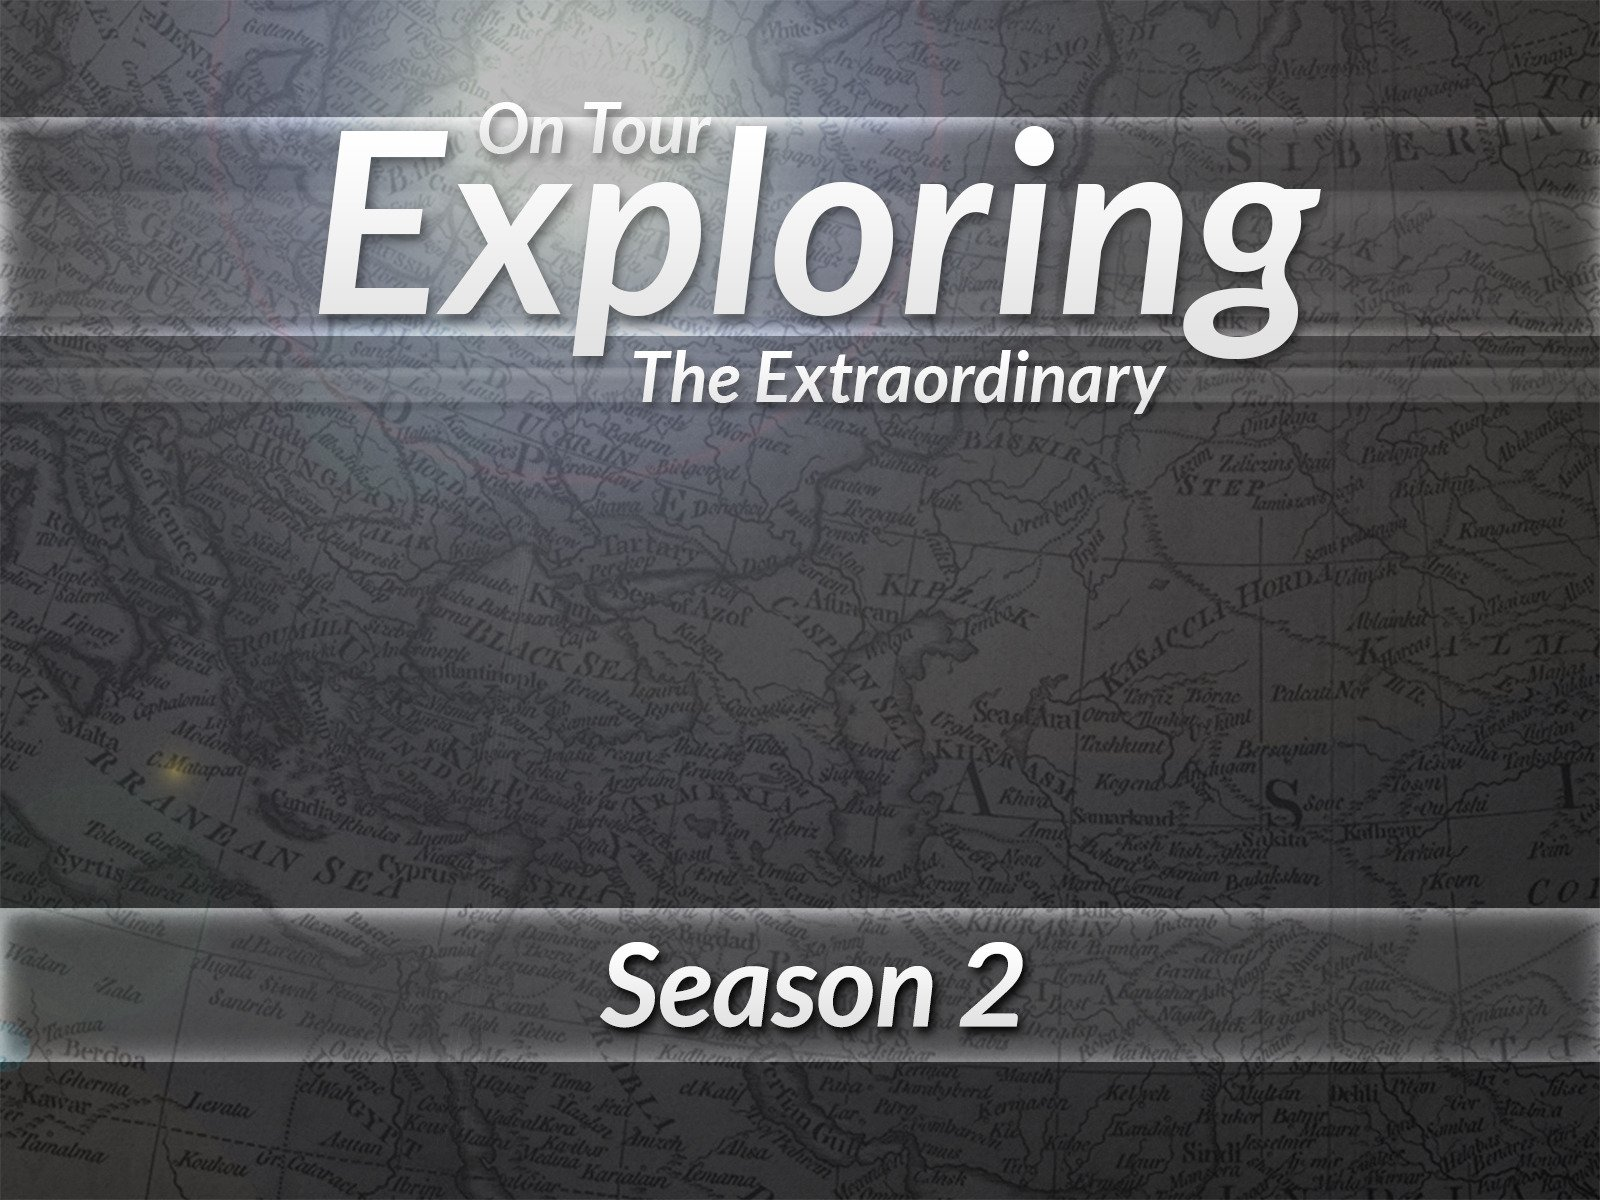 On Tour: Exploring the Extraordinary - Season 2